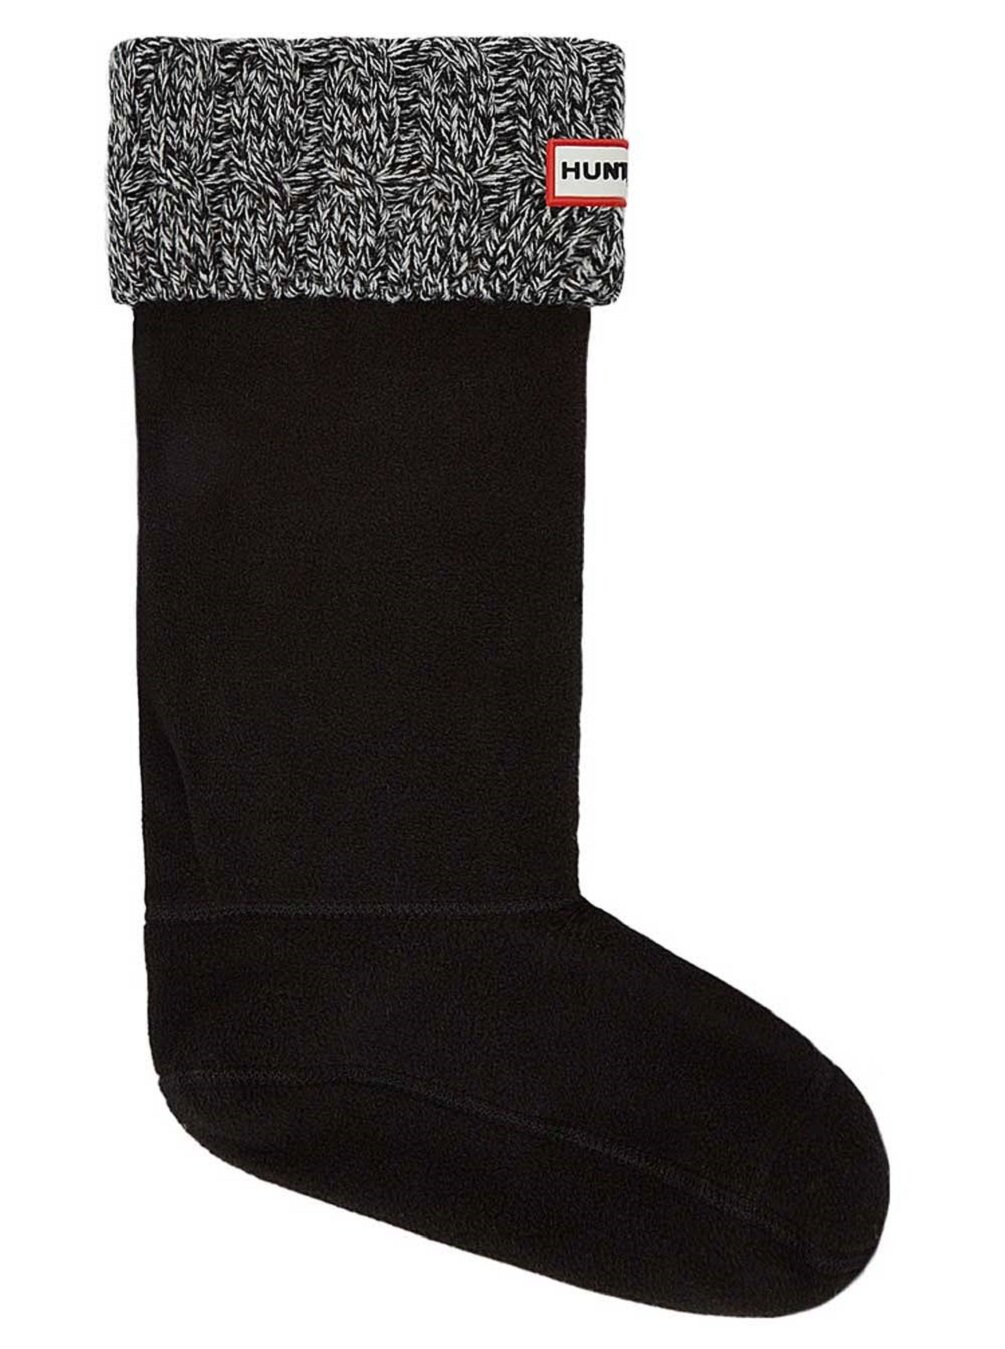 Hunter Boots Women's 6 Stitch Cable Boot Sock Blk/Gry LG M US